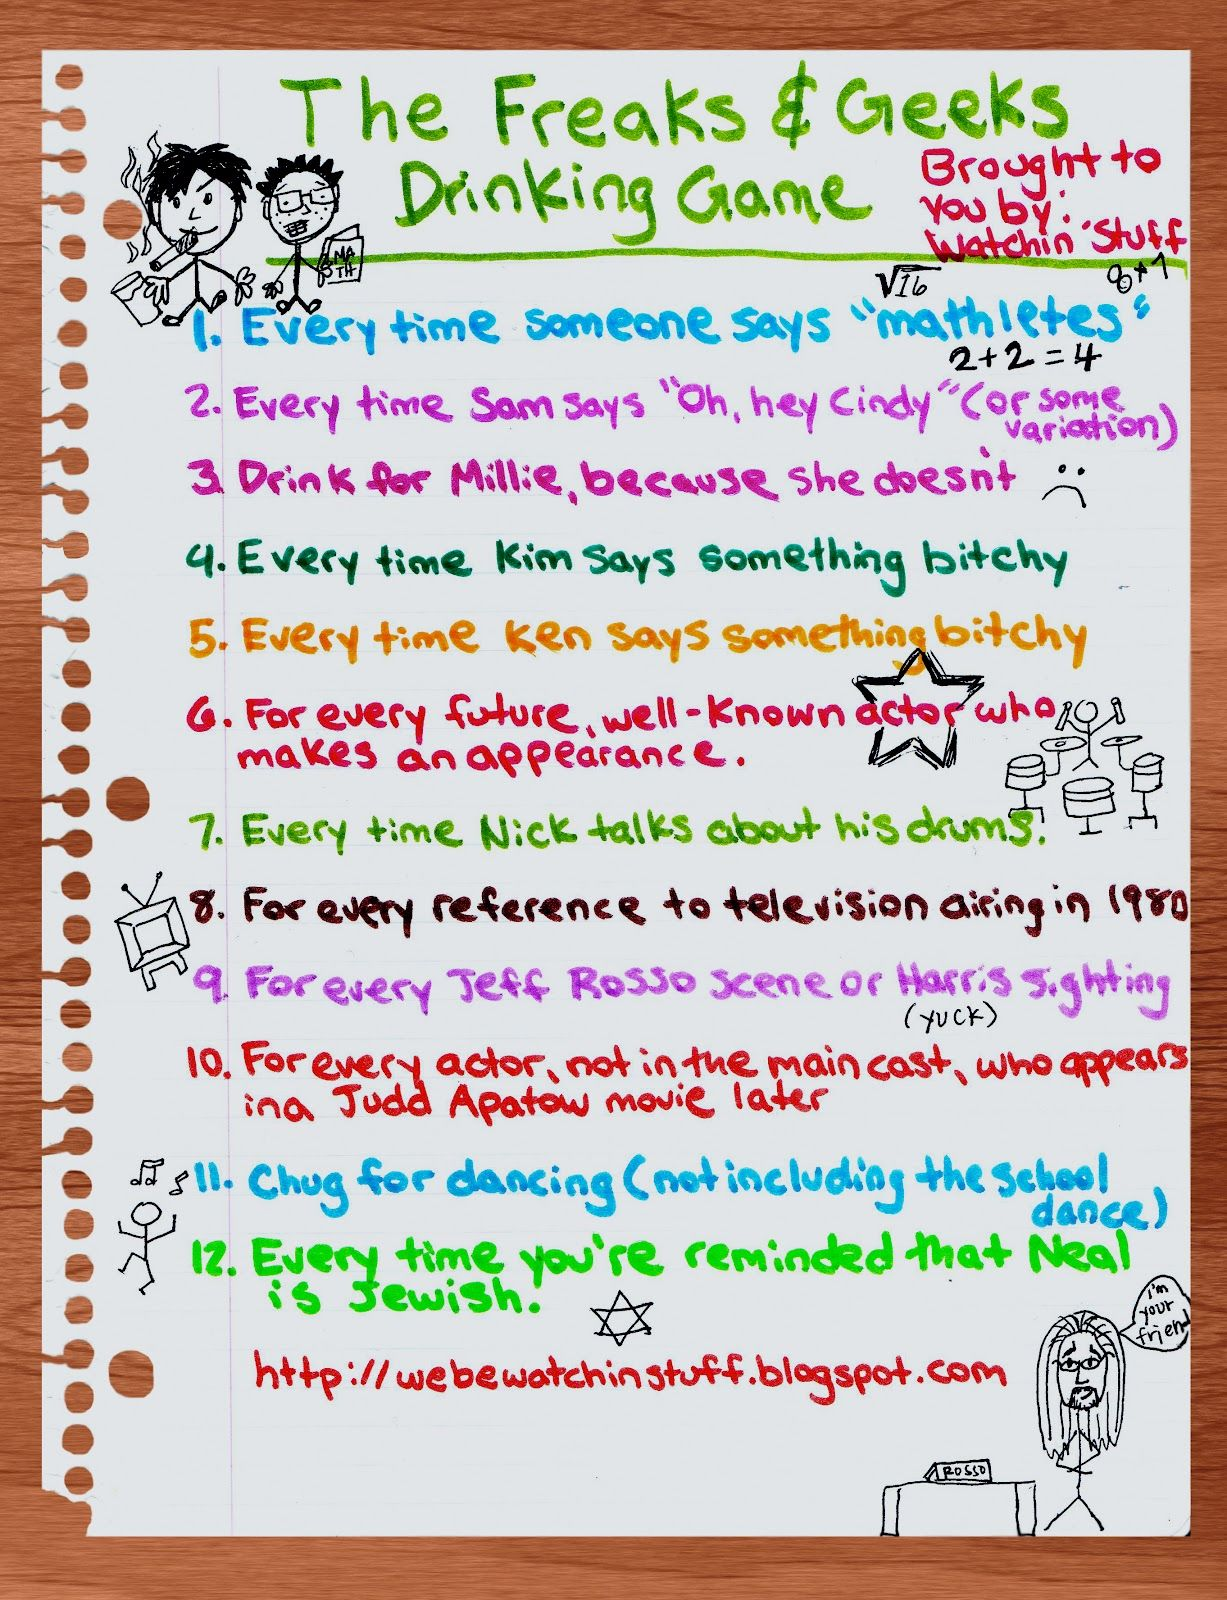 Pin By Adriana Montes On Lol Freaks And Geeks Tv Show Drinking Games Freeks And Geeks